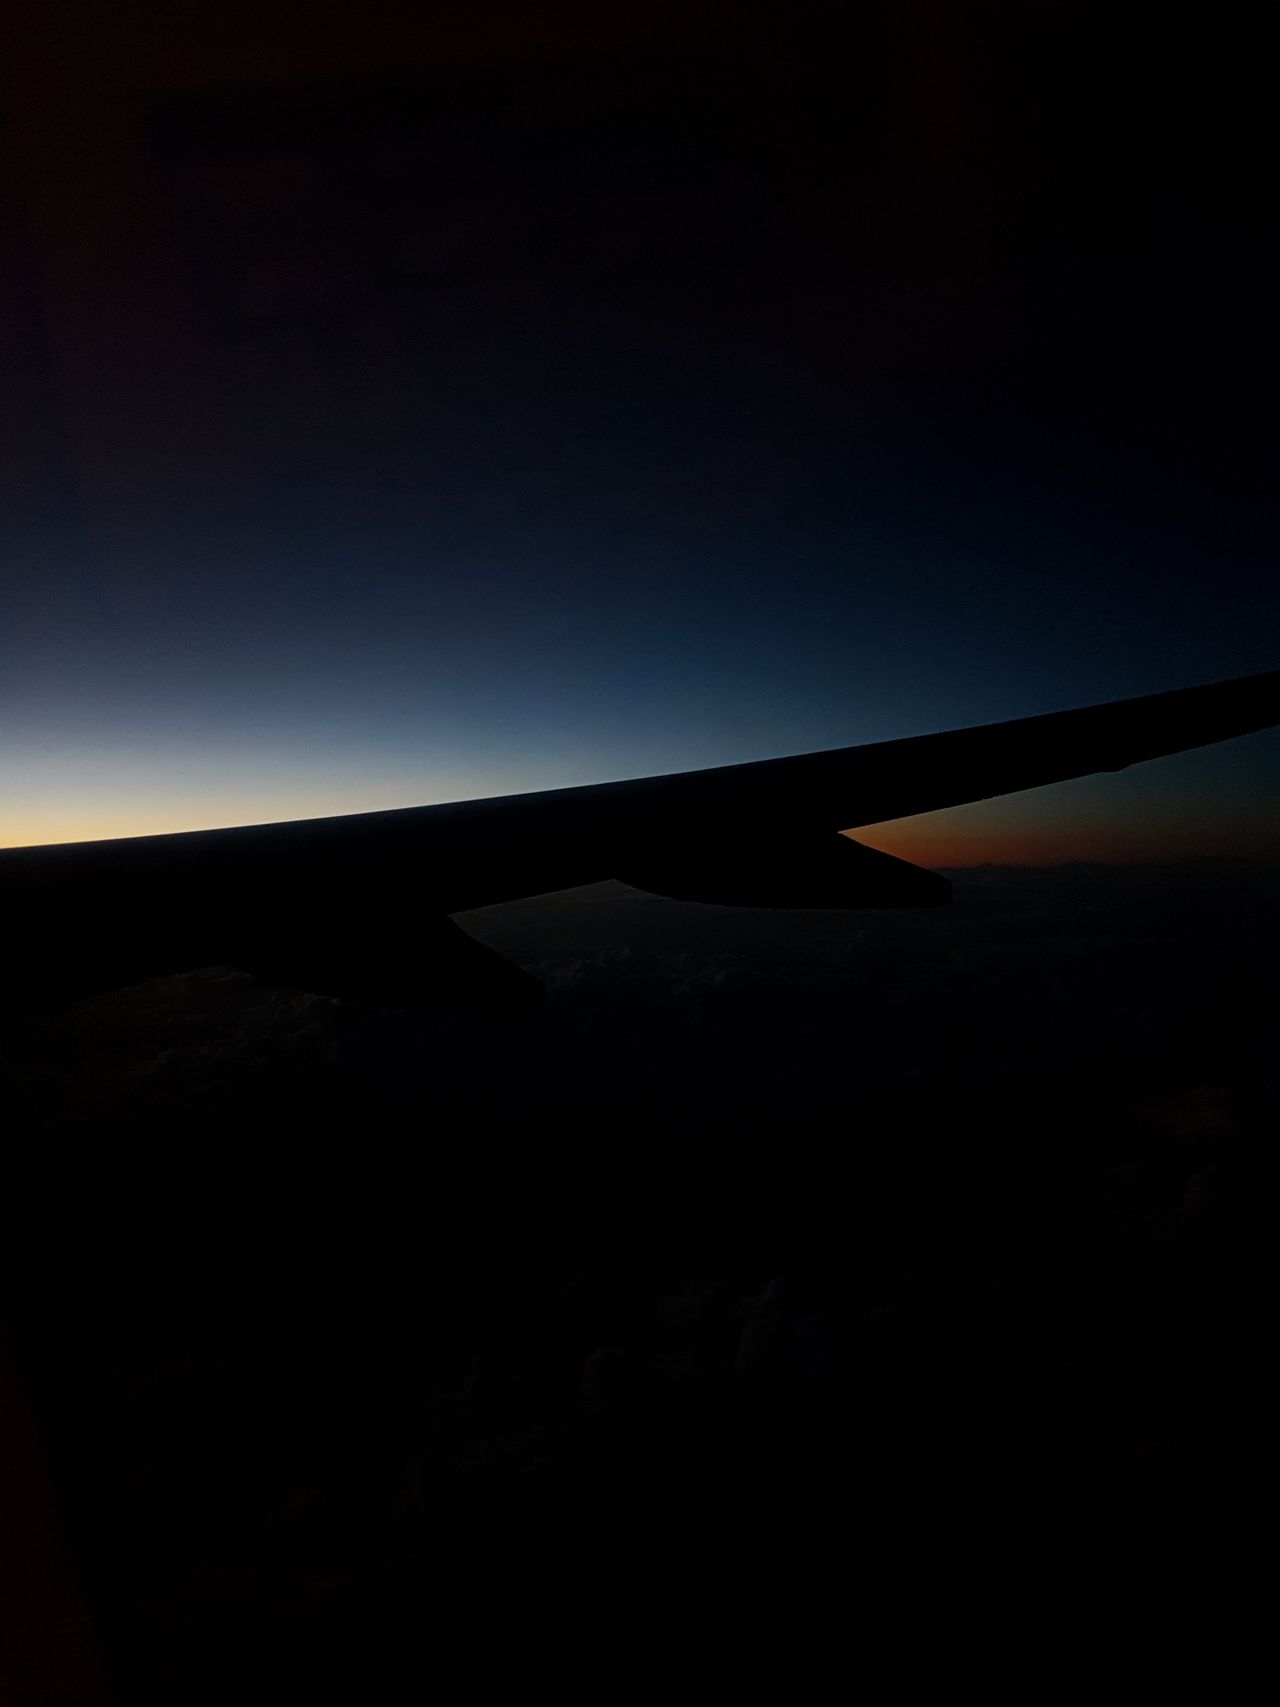 Sunrise from the aeroplane 😍 Night Star - Space Sky Dark Astronomy Silhouette Space And Astronomy Nature Outdoors Distant Scenics Tranquil Scene Landscape Constellation Galaxy Beauty In Nature No People Mountain Space Natural Phenomenon Sunrise Flying Plane Ryanair EyeEm Best Shots